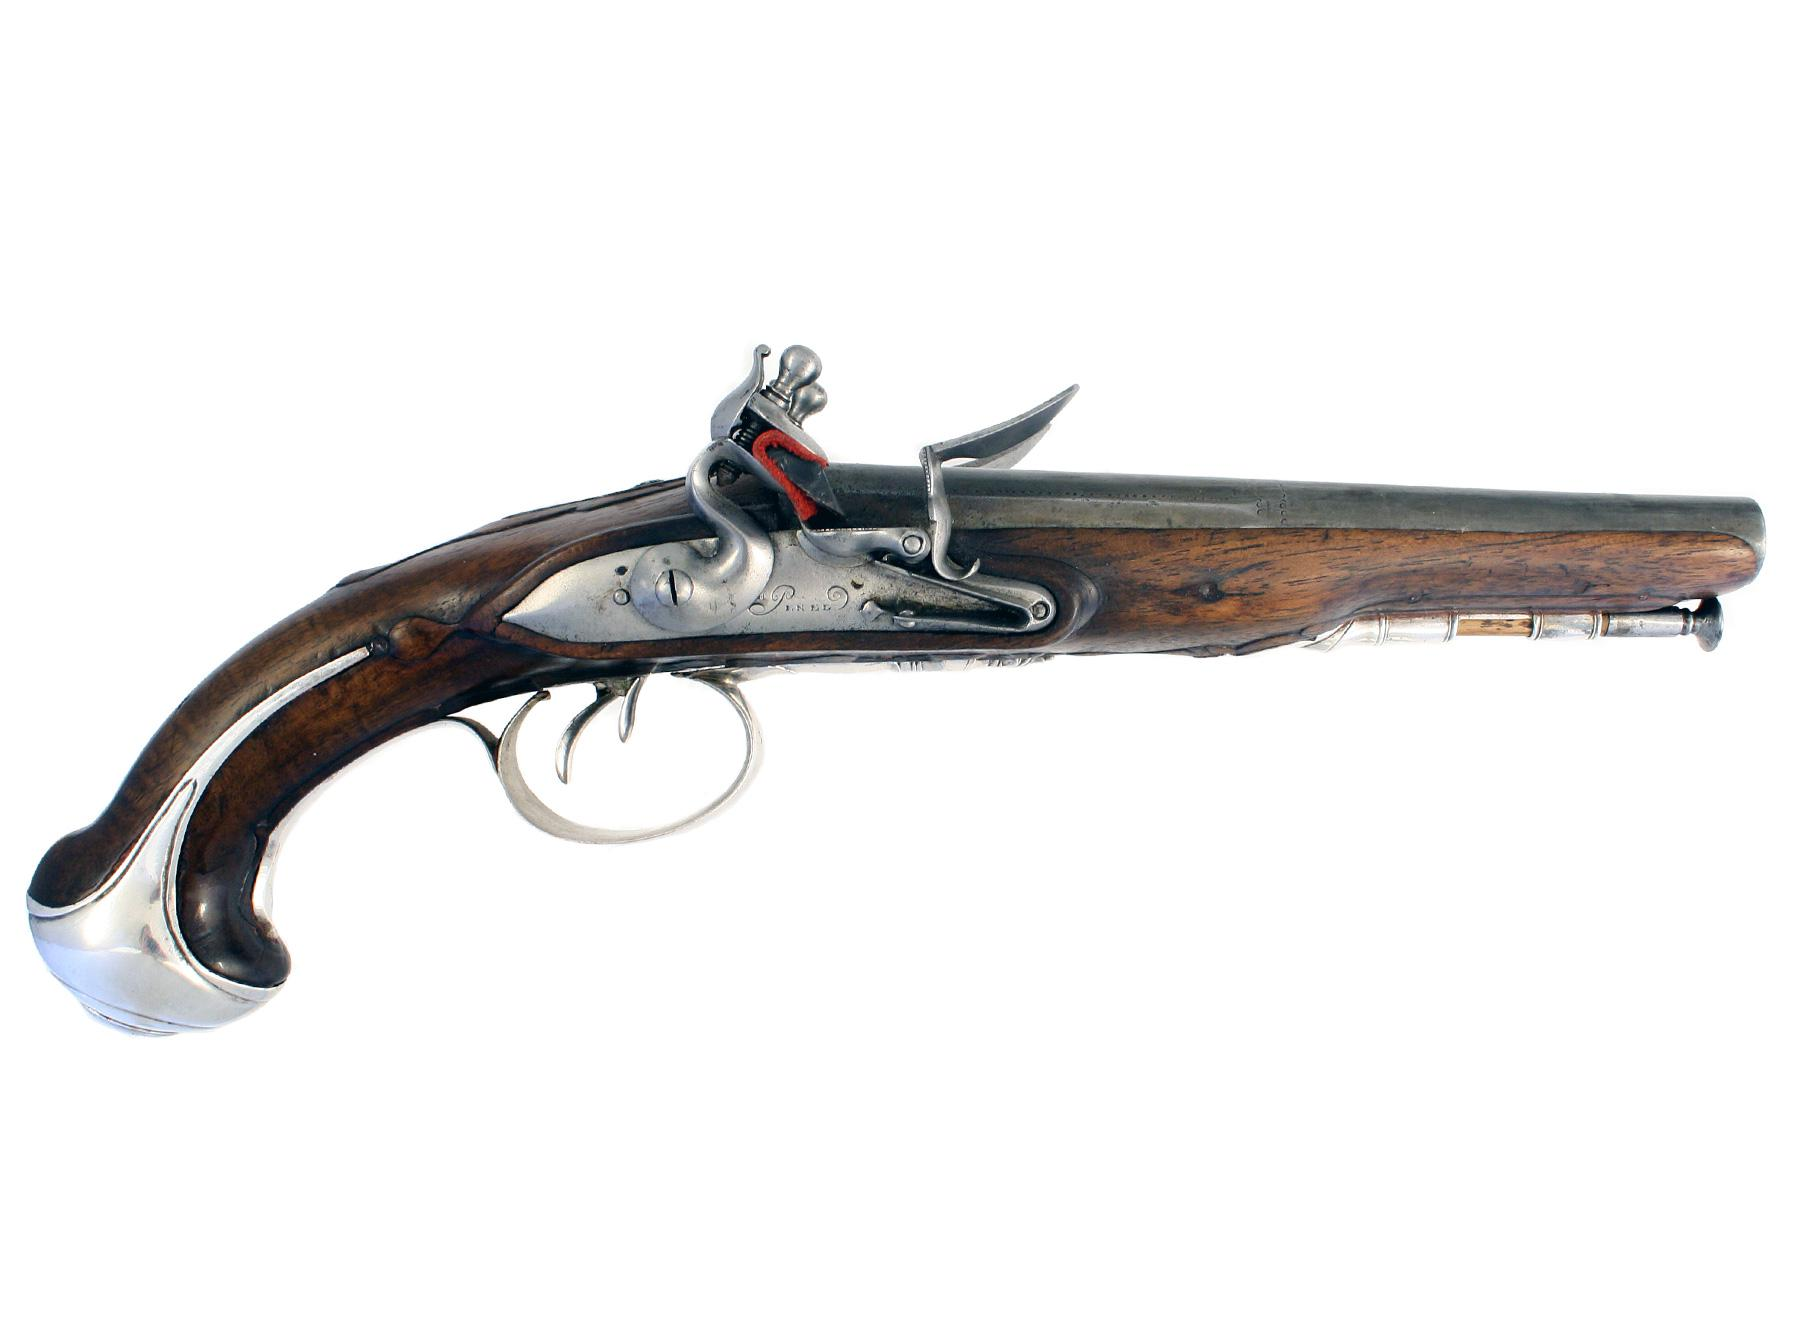 A French Double Barrelled Pistol